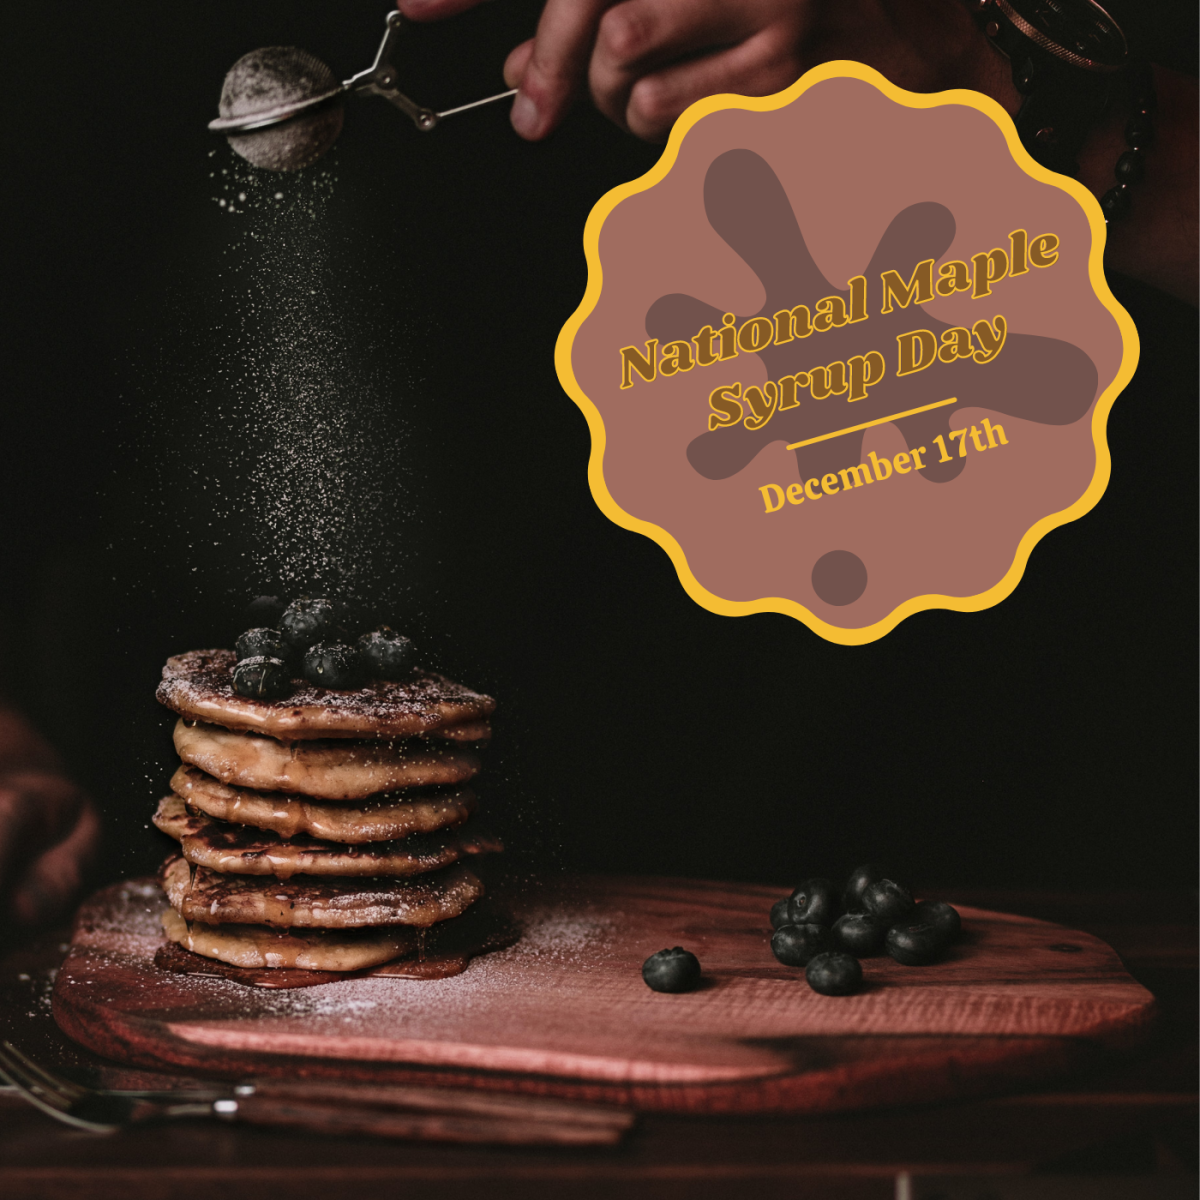 Watch your back, Christmas—December 17th is National Maple Syrup Day!